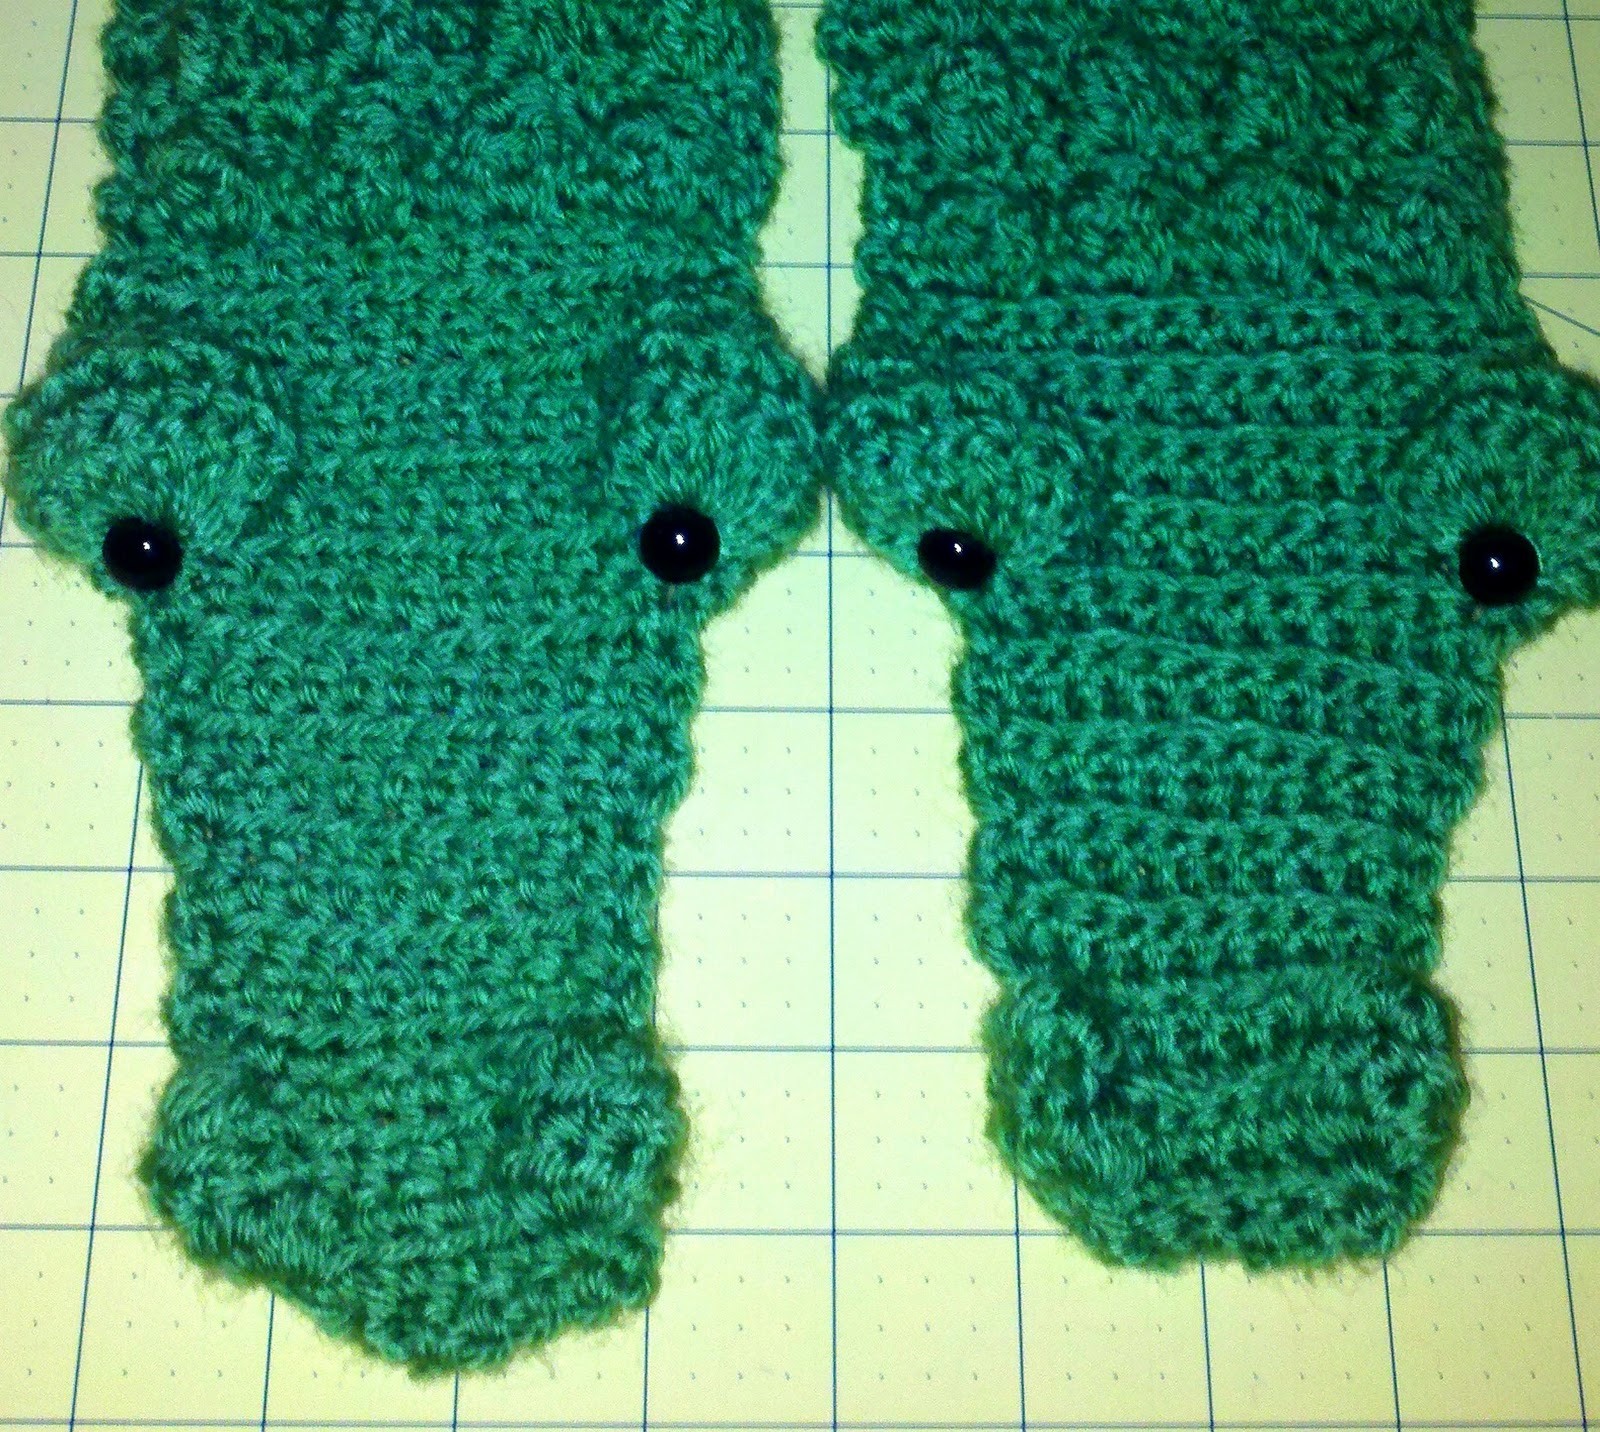 Bright and Shiny - Lovely and Good: Gator Scarf Pictures